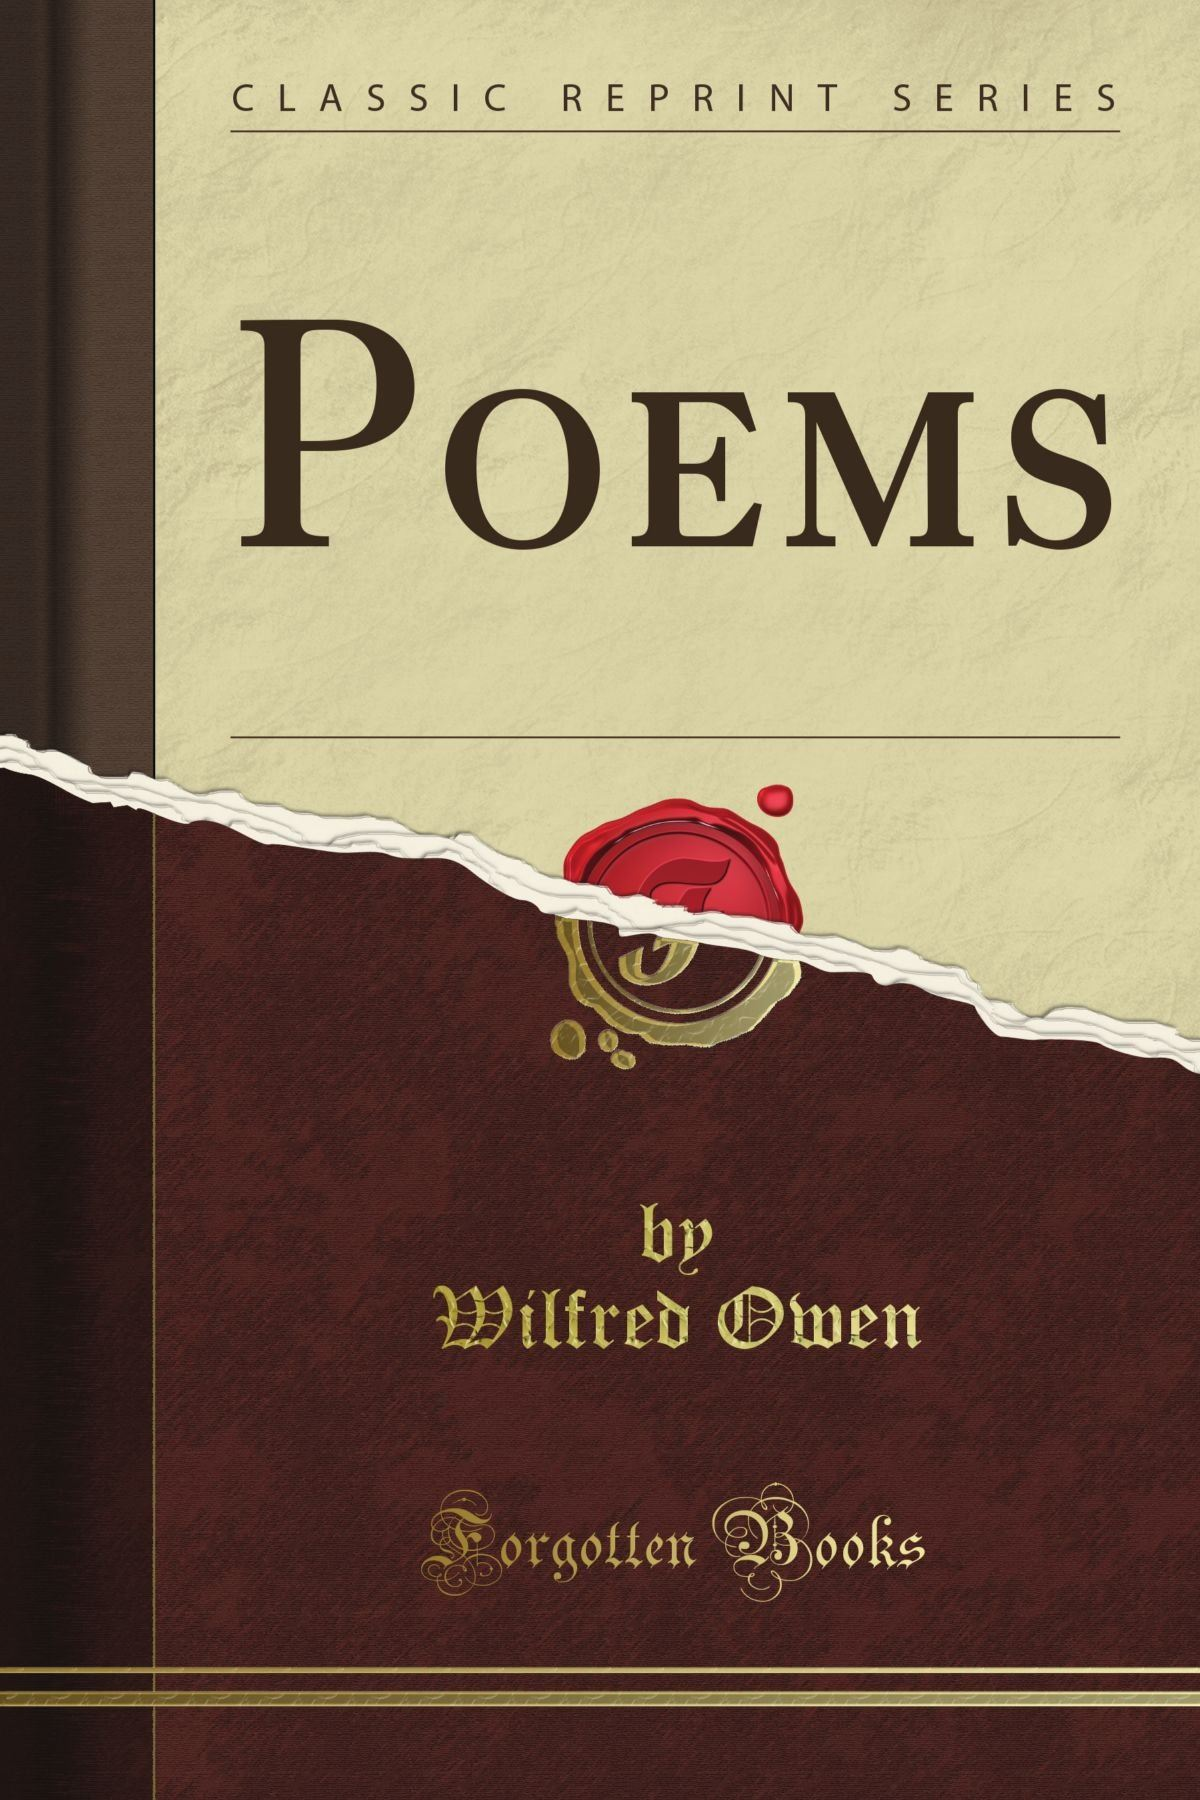 Poems (book cover)